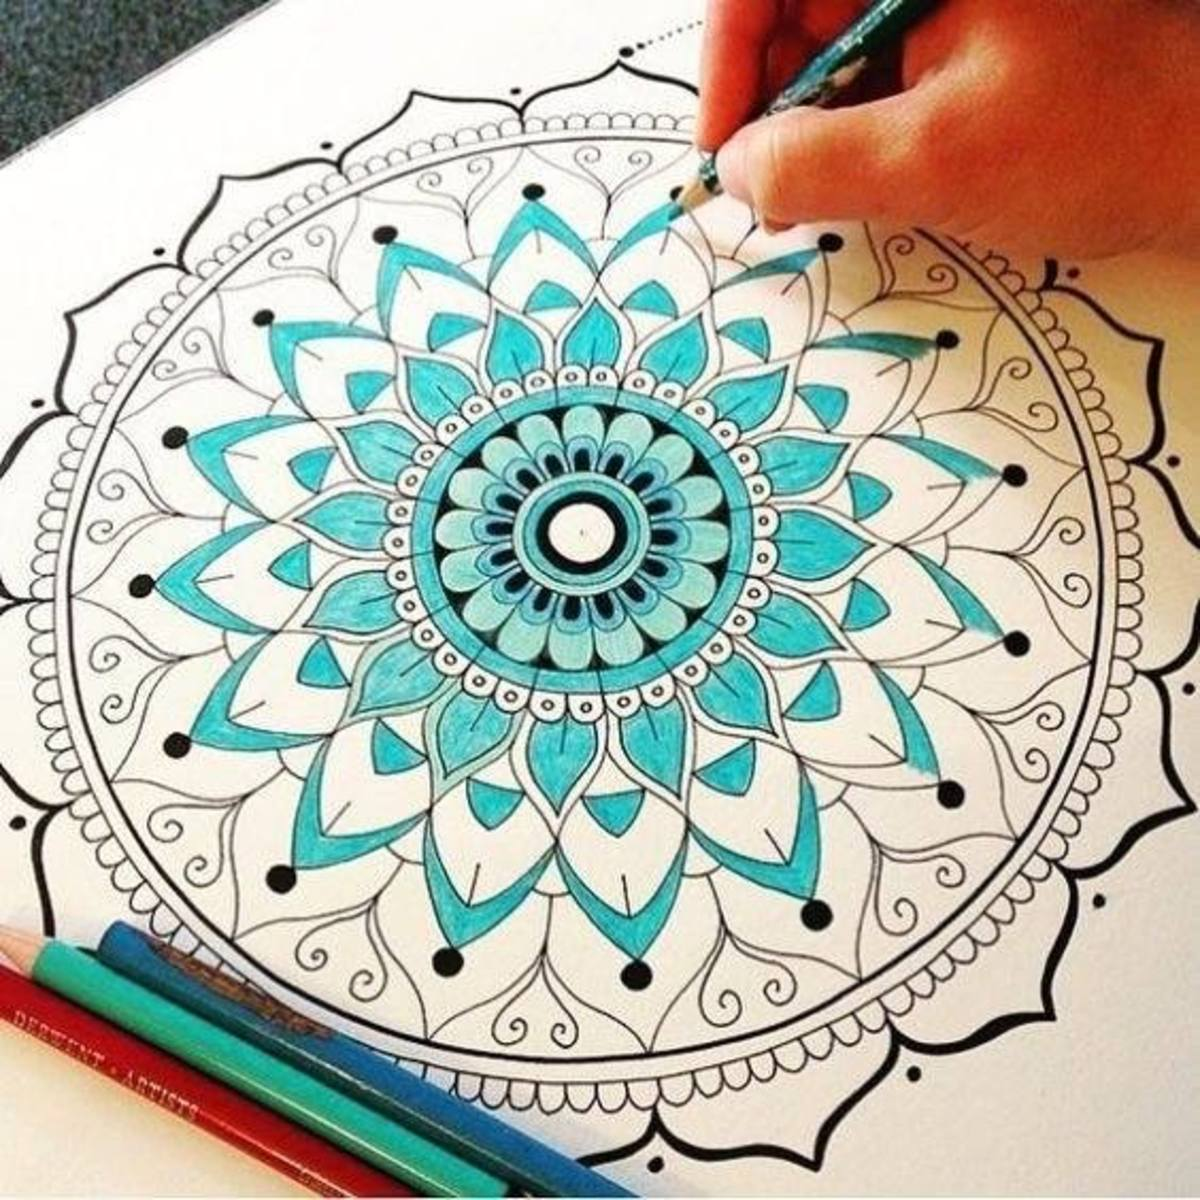 Traditional practice of drawing mandalas